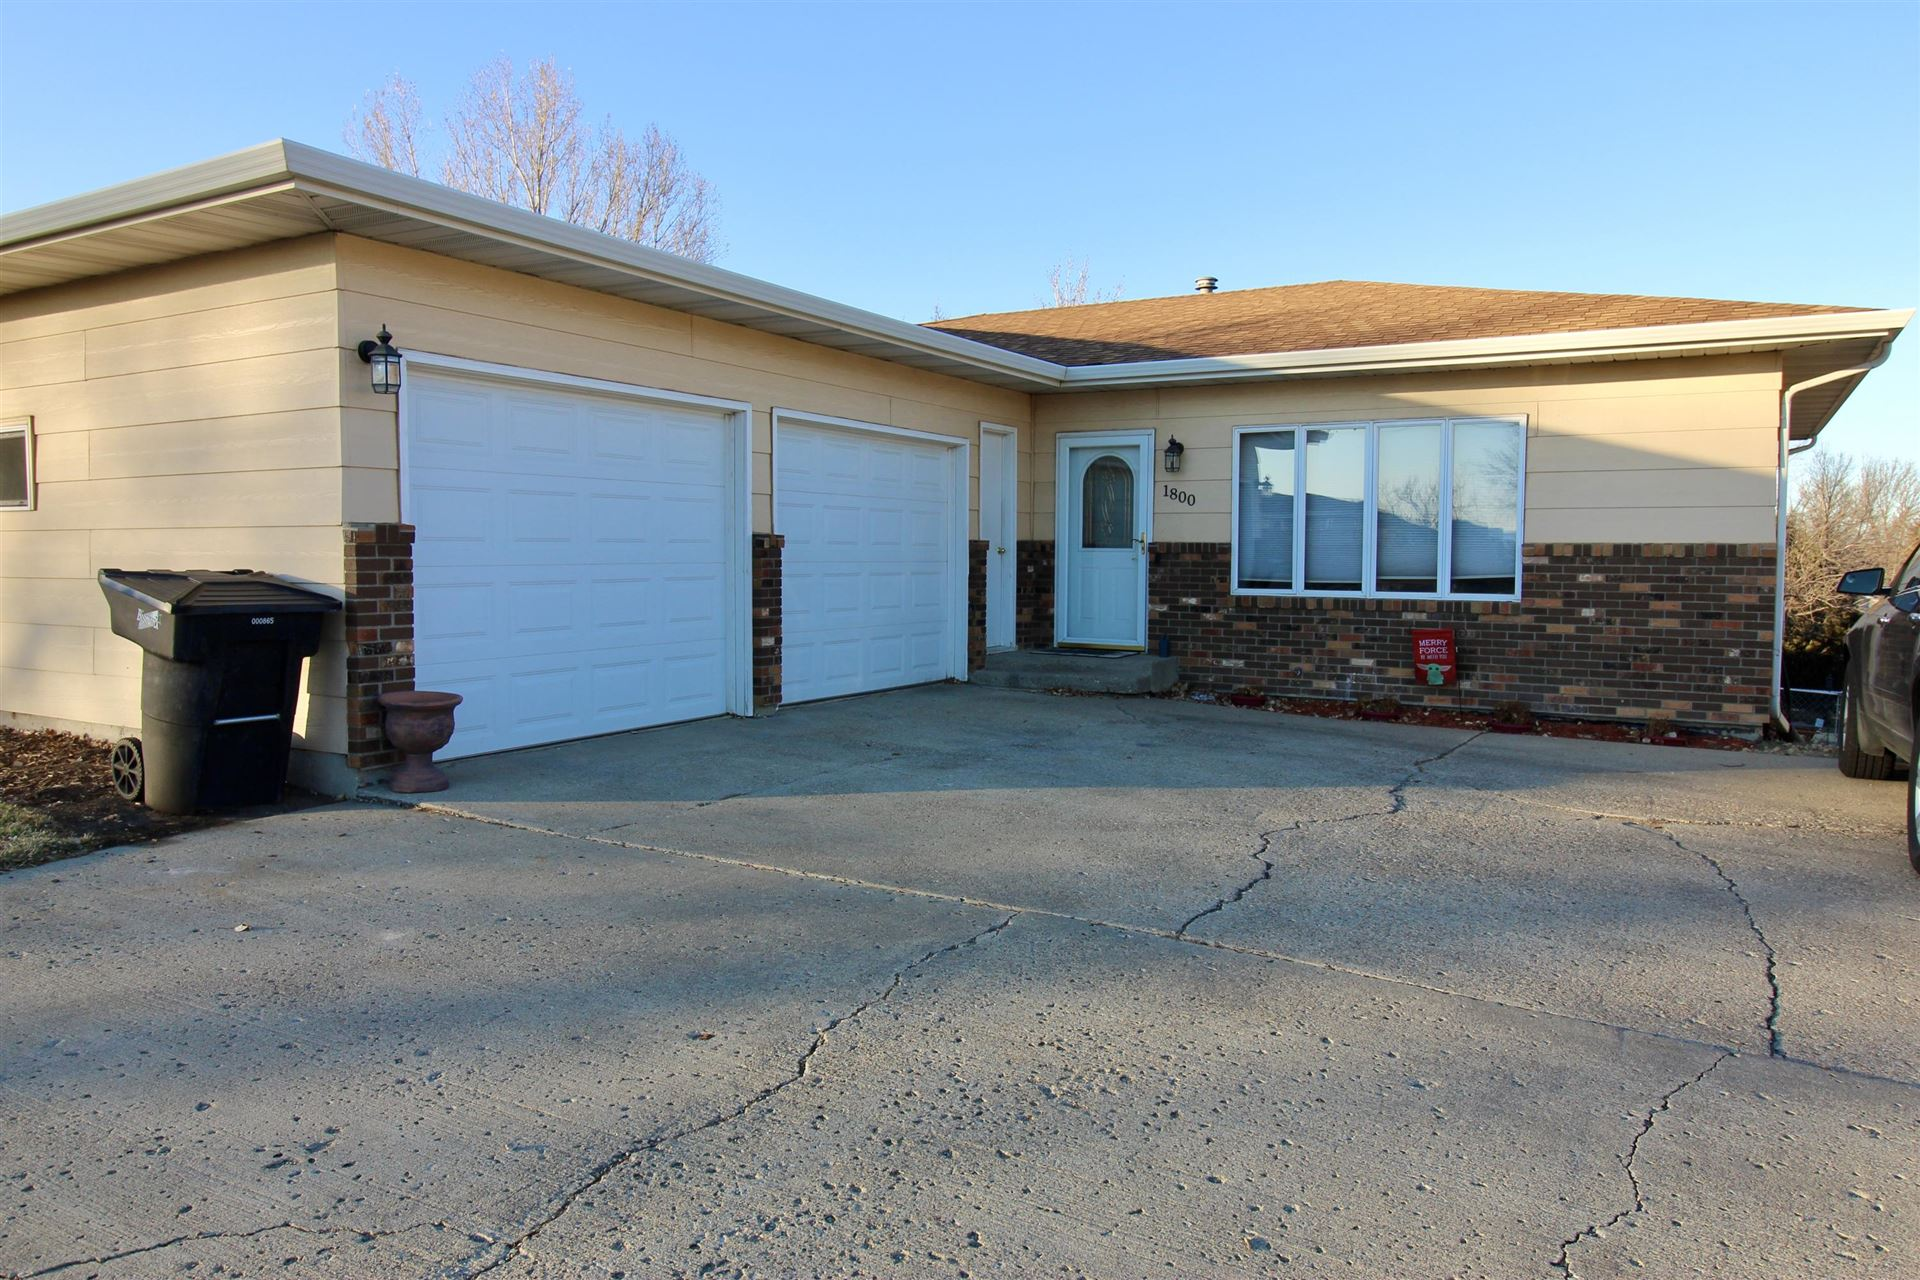 1800 E Divide Avenue, Bismarck, ND 58501 - #: 409090